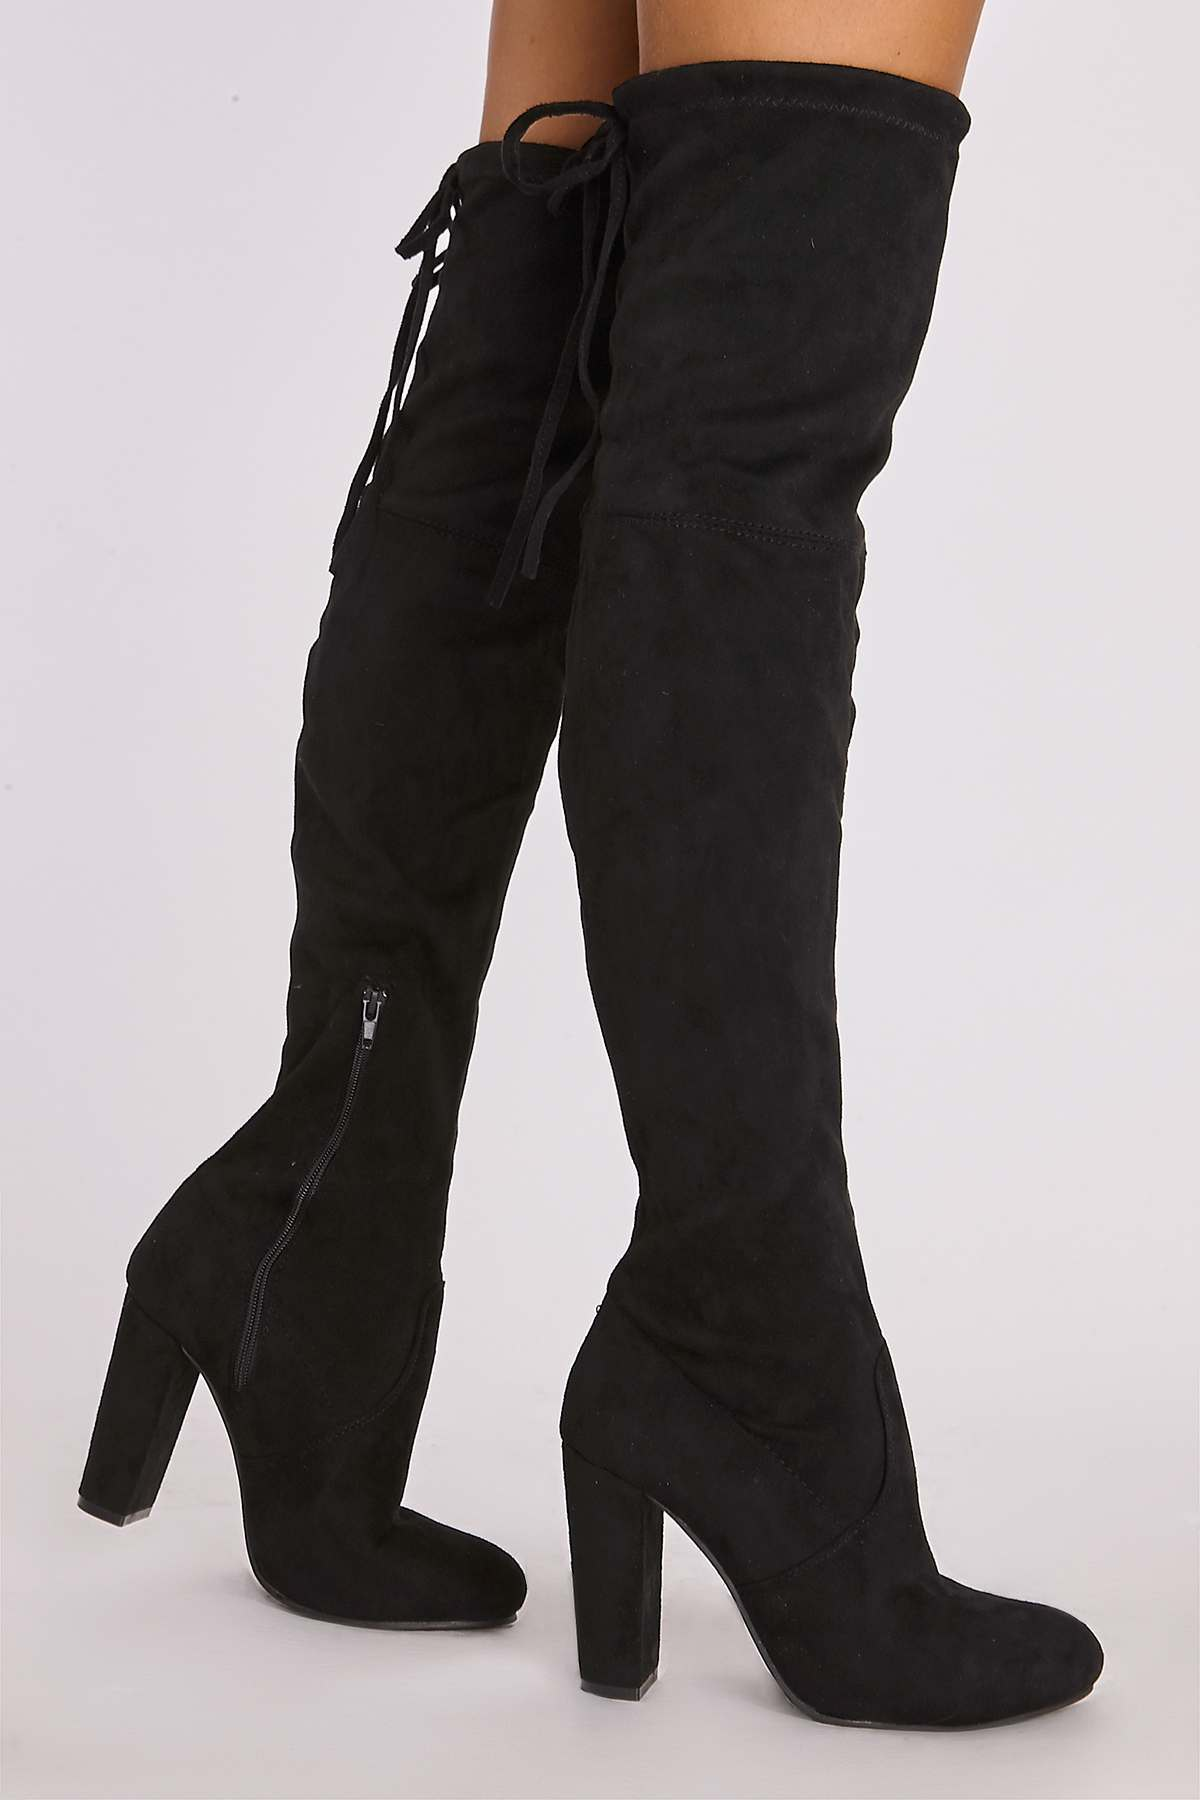 a5f9c81829e22 Remi Black Faux Suede Over The Knee Heeled Boots